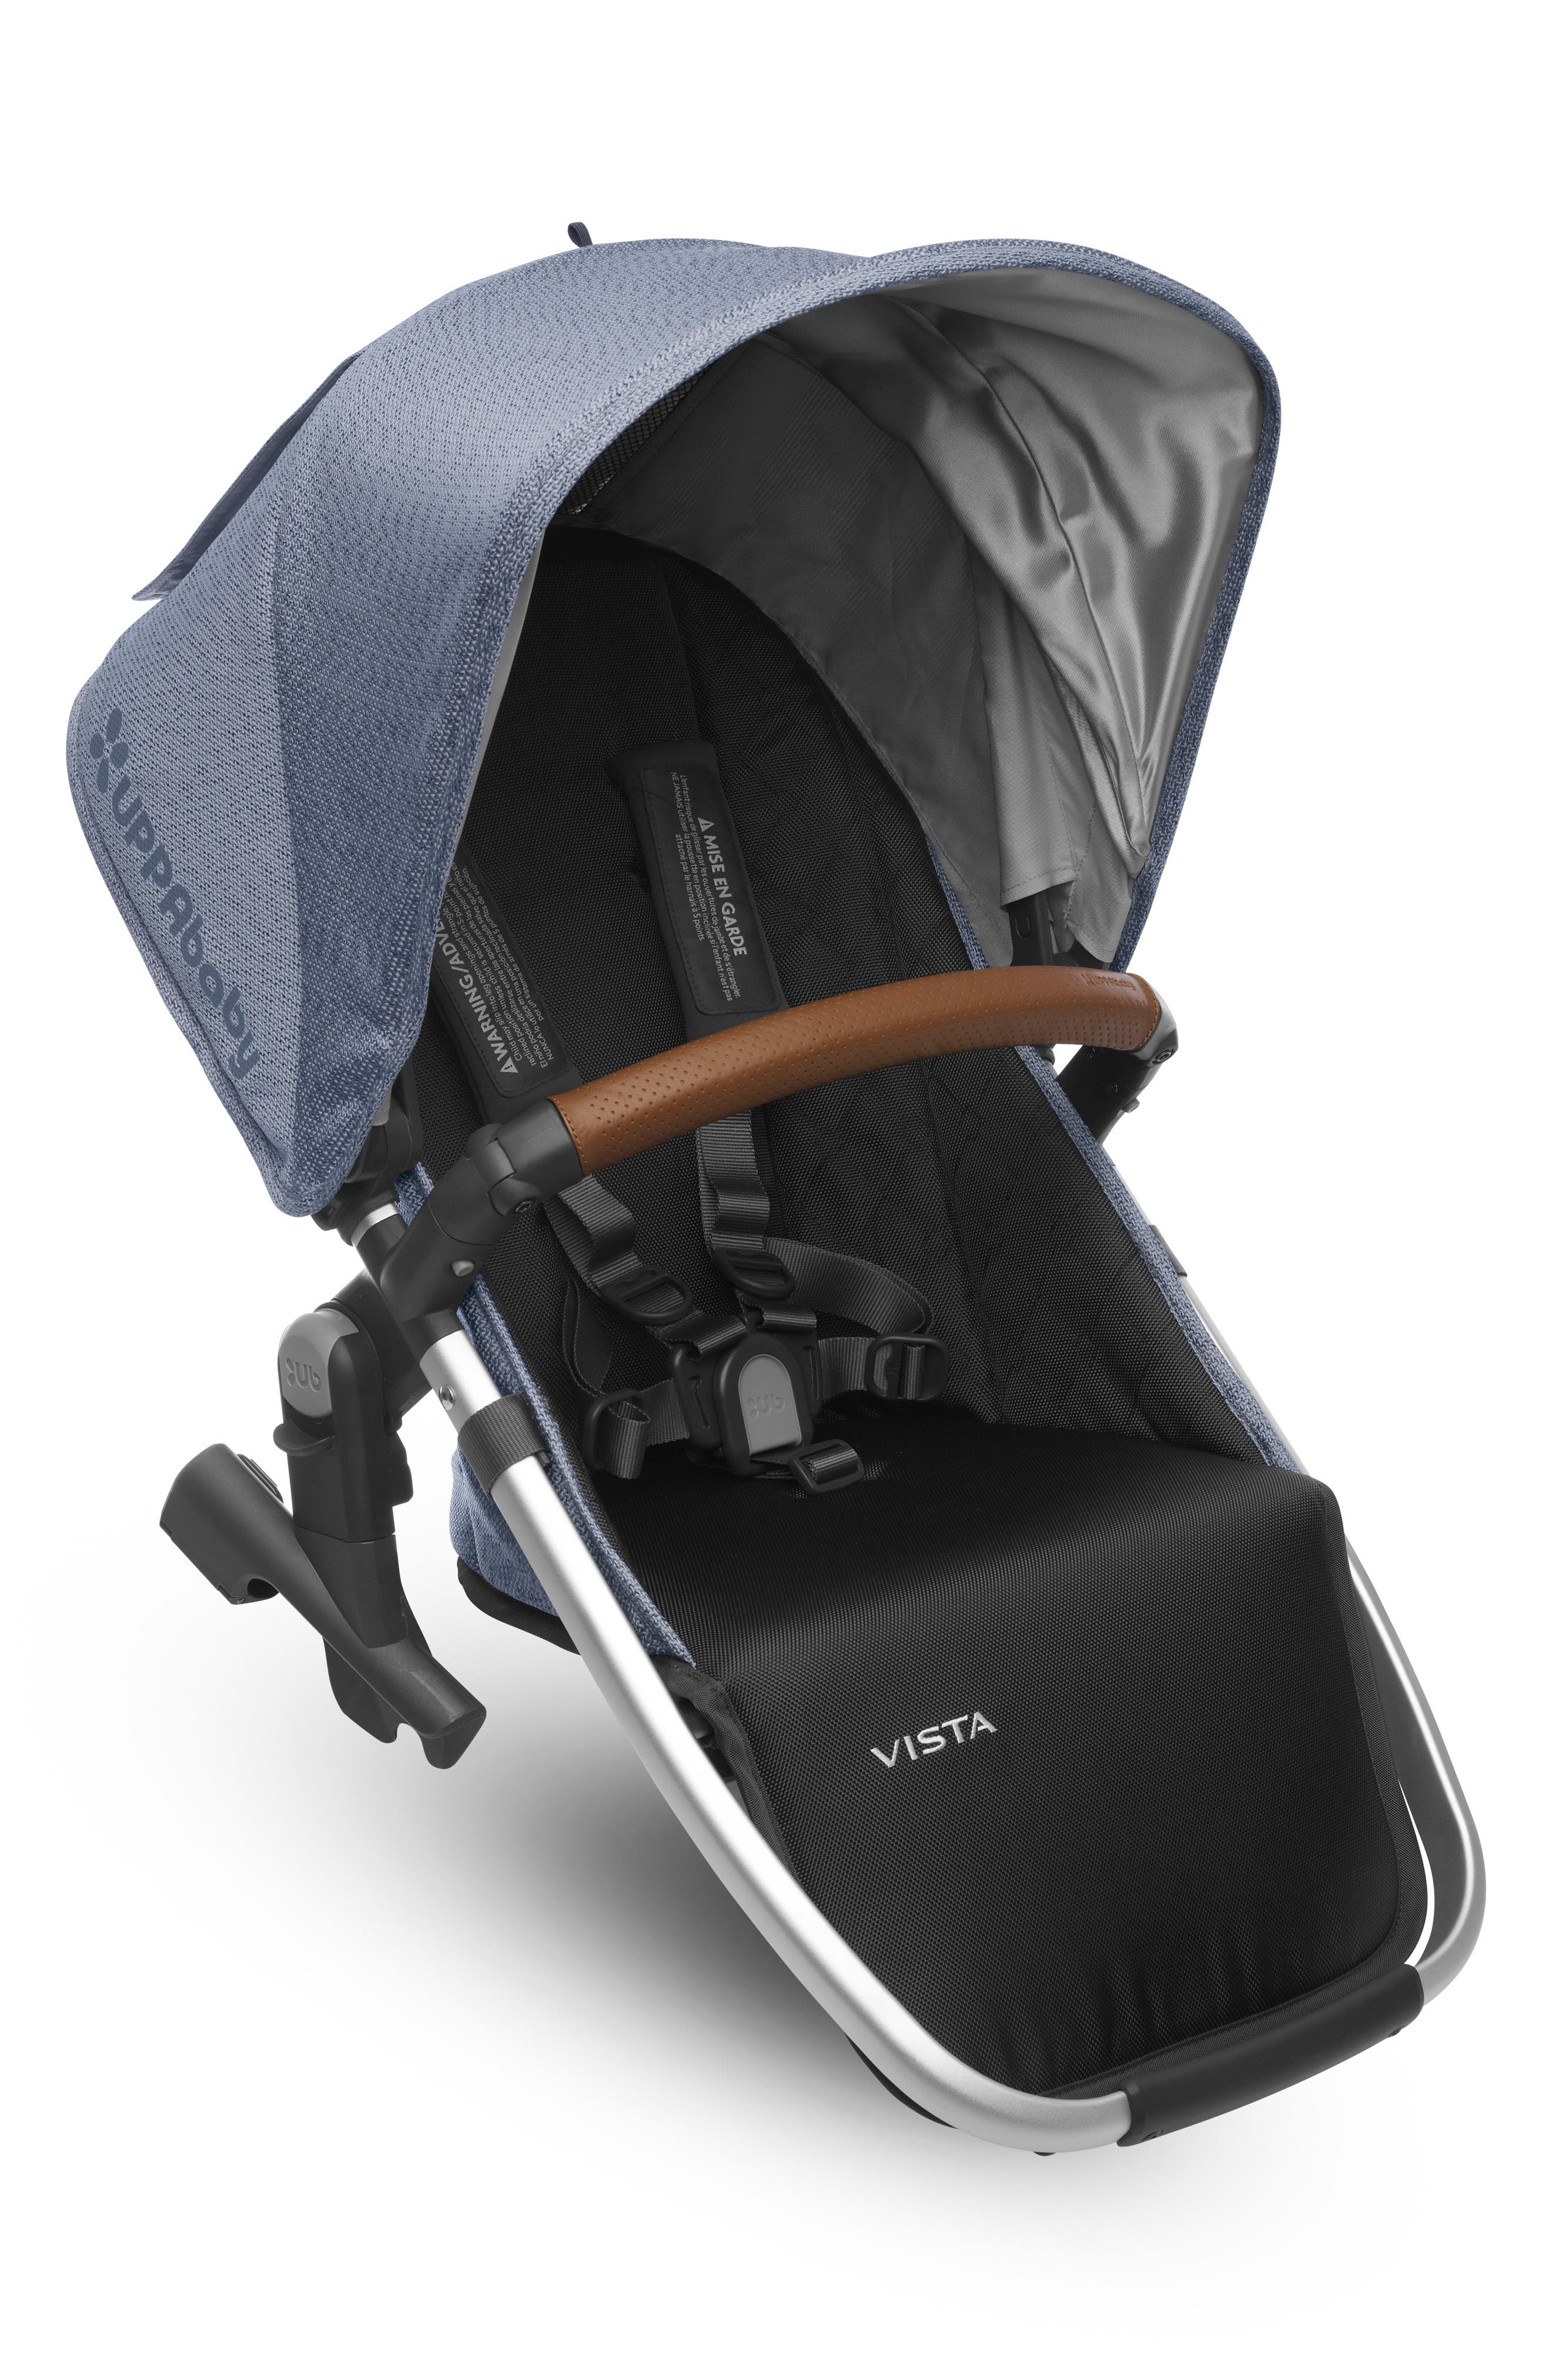 Main Image - UPPAbaby VISTA RumbleSeat with Leather Trim